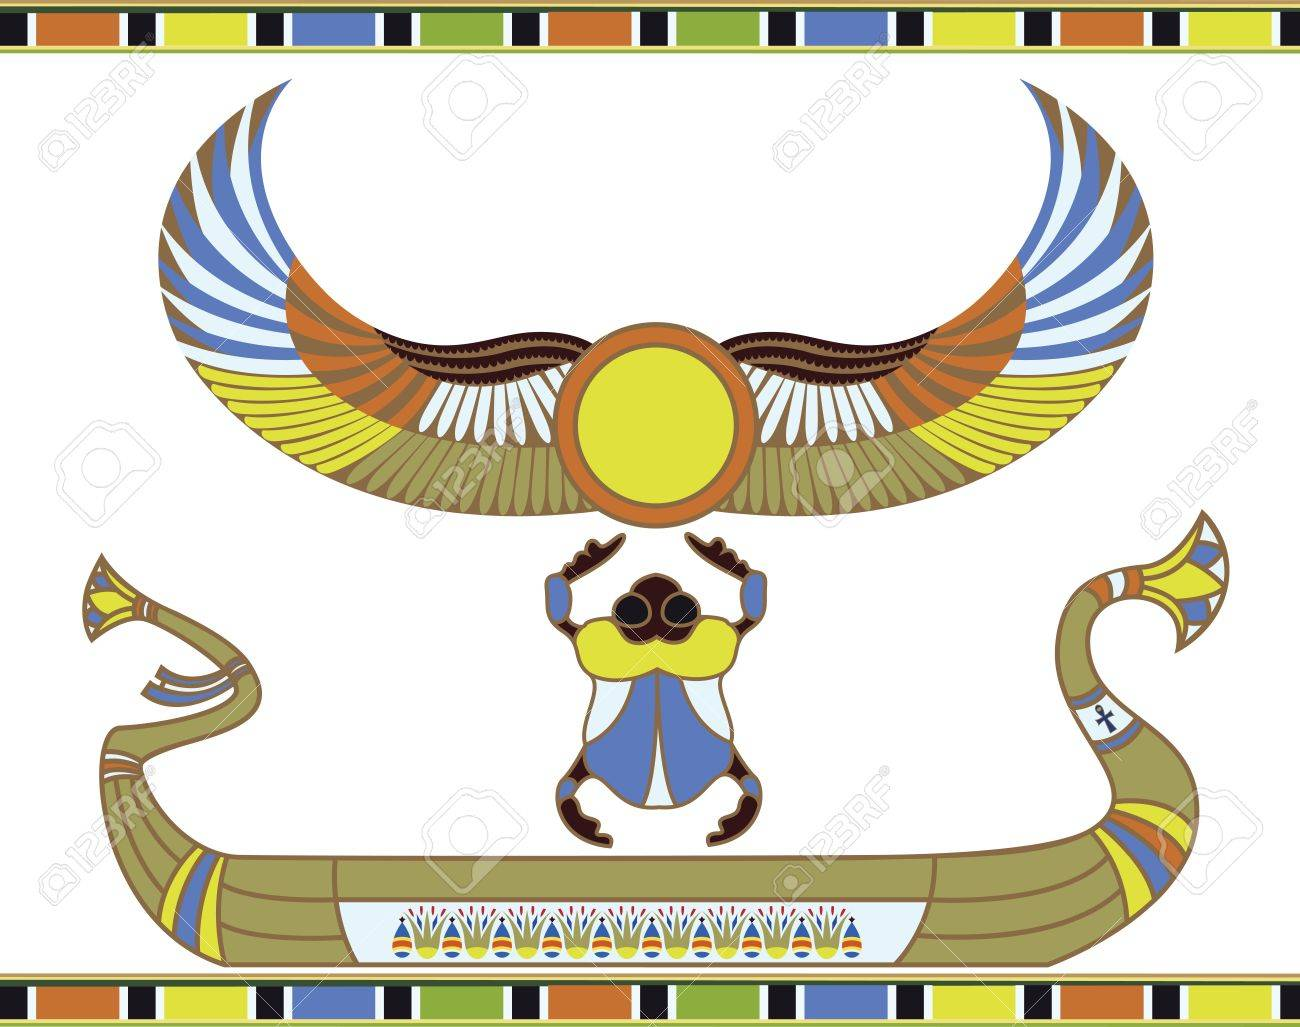 Egyptian sun boat with scarab - 9634345